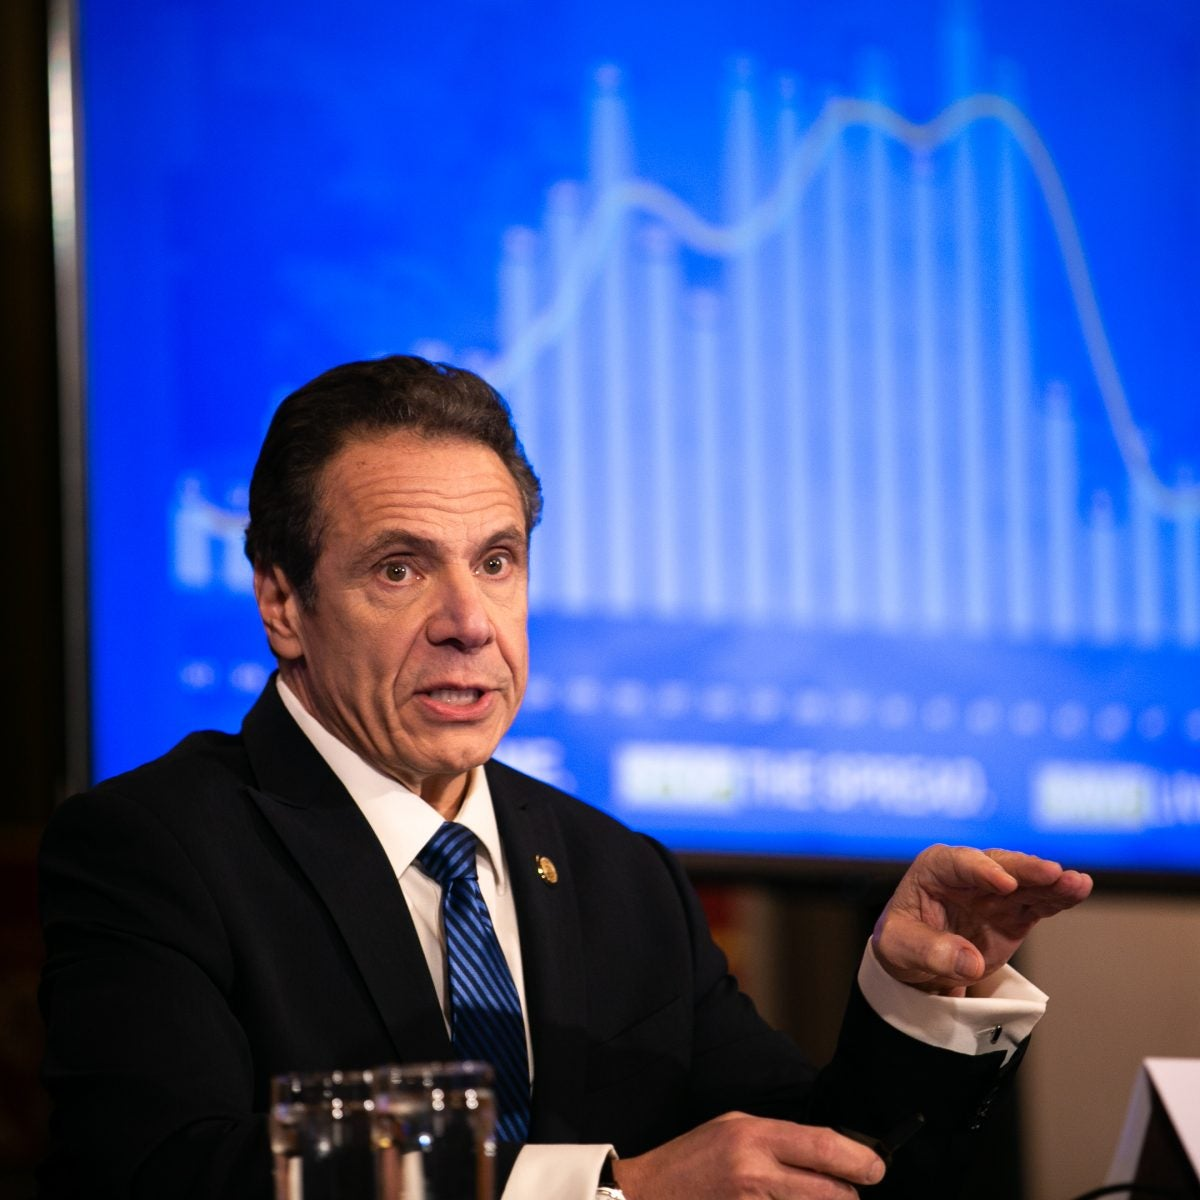 Cuomo Calls McConnell's Bankruptcy Suggestion 'Really Dumb'